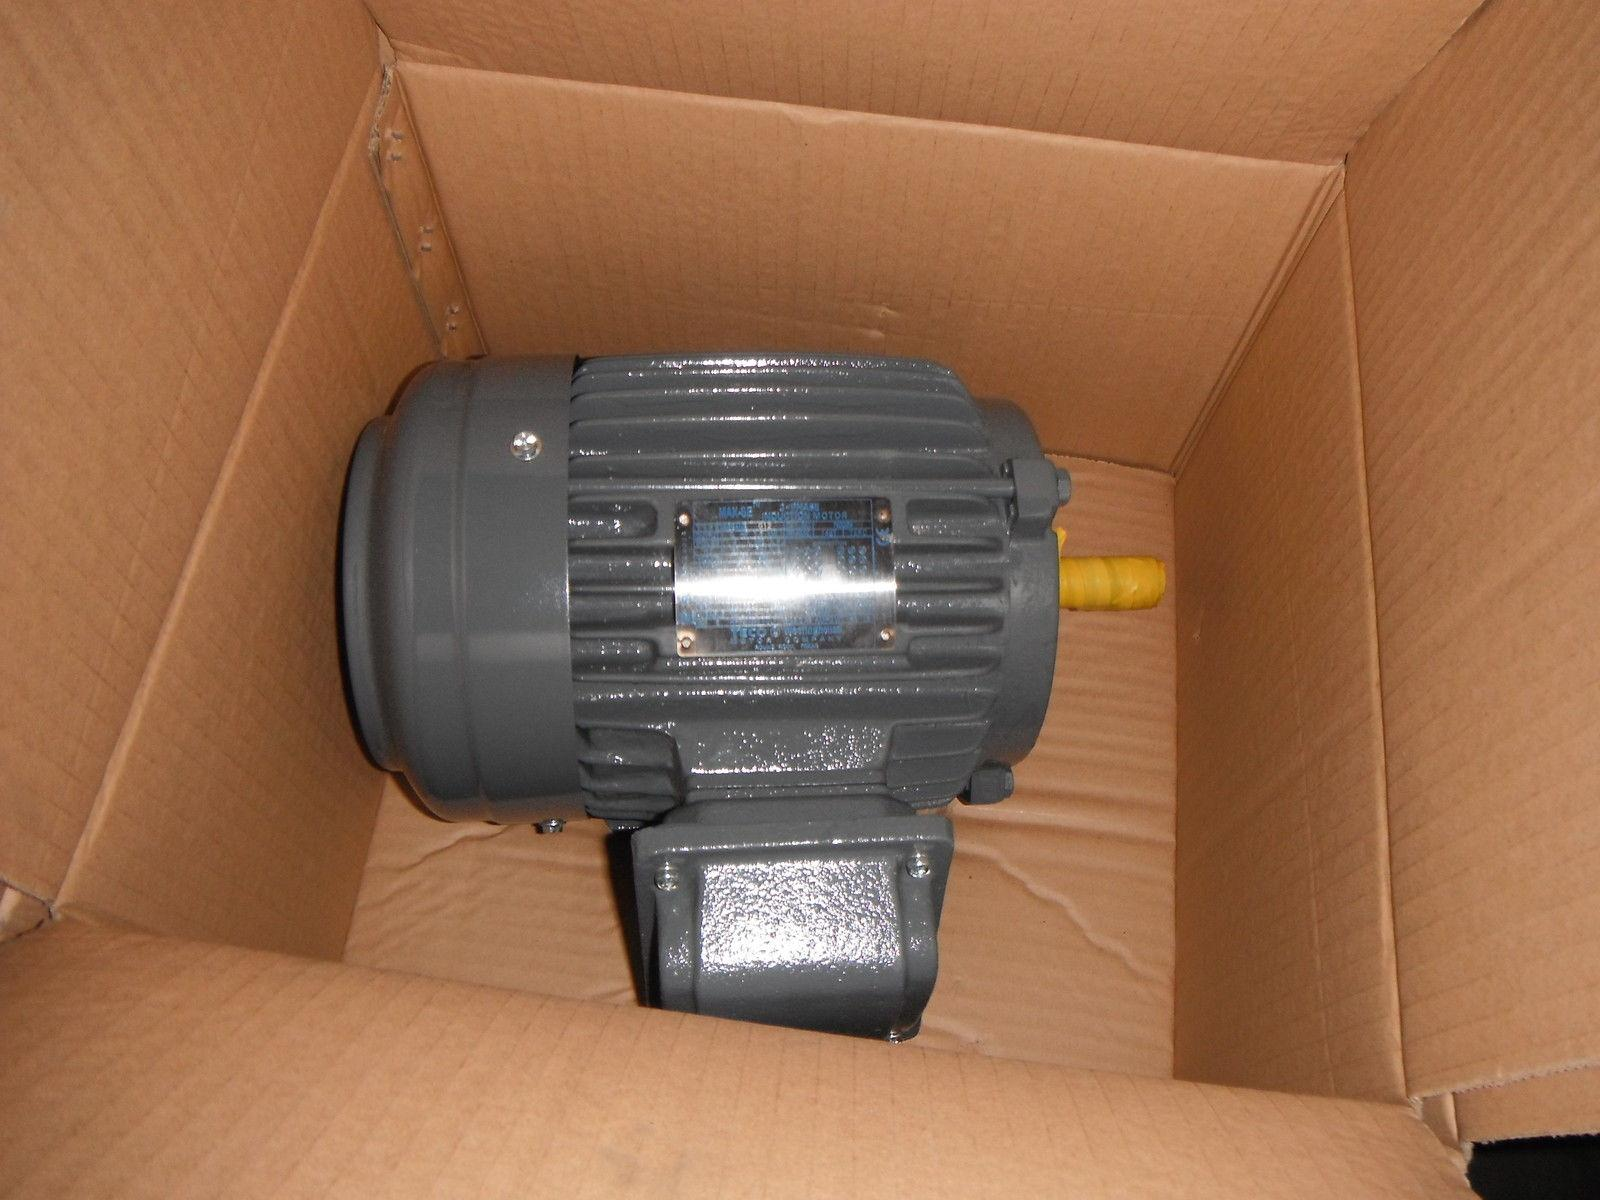 Teco n0024 2 hp 3 phase induction electric motor 247 ebay for 20 hp 3 phase motor